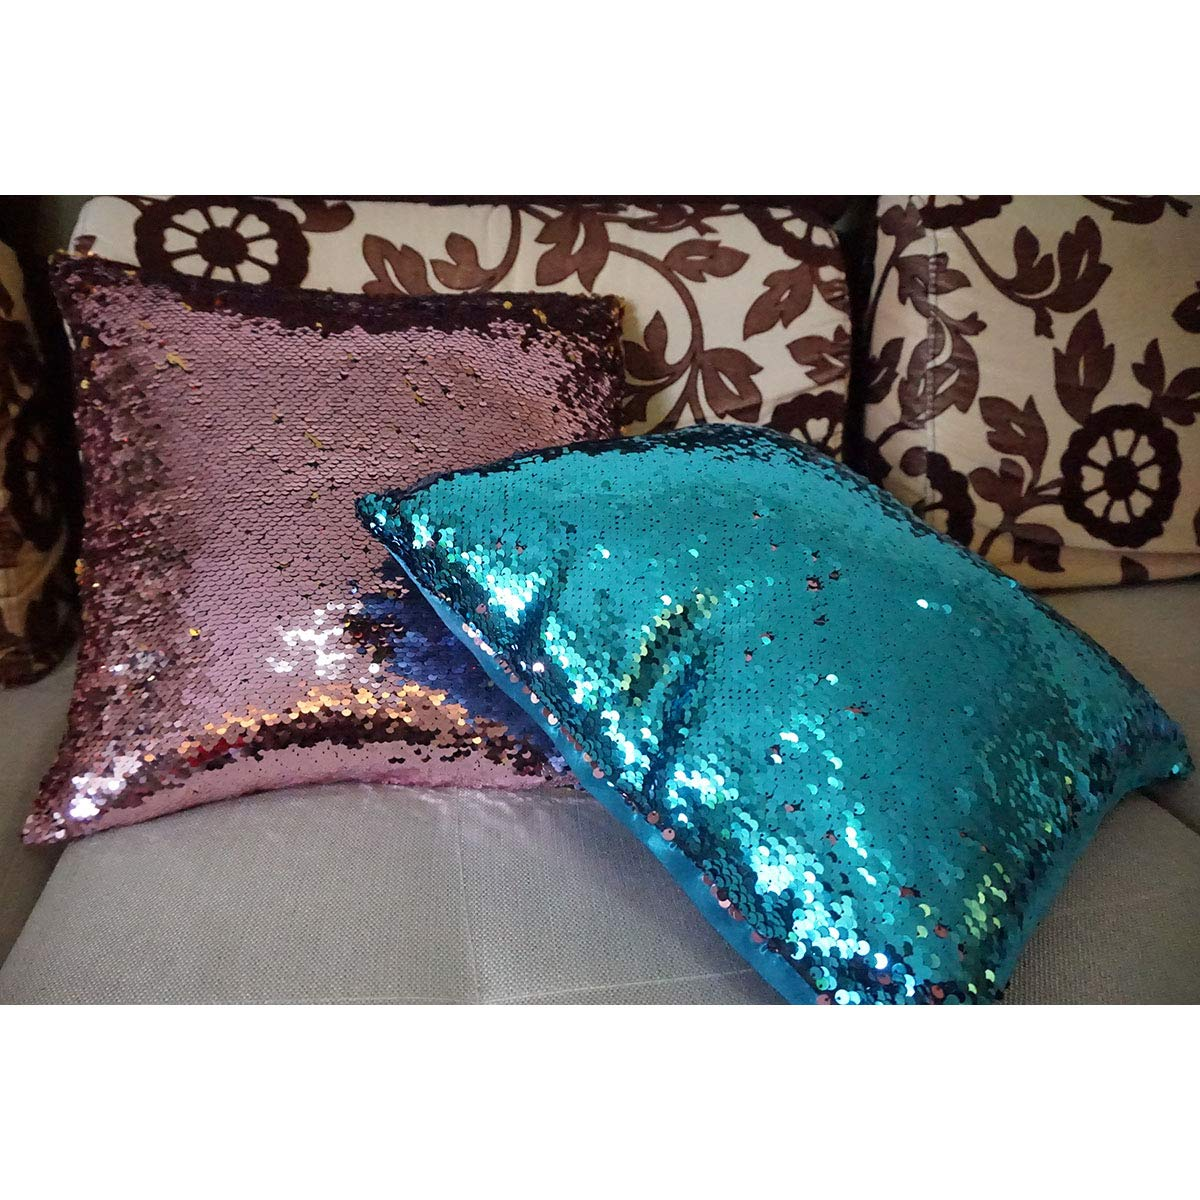 TRVIVOM Bling-Bling Two Sided Magic Sequins DIY Decorative Throw Pillow Cover 1616 Red /& Black